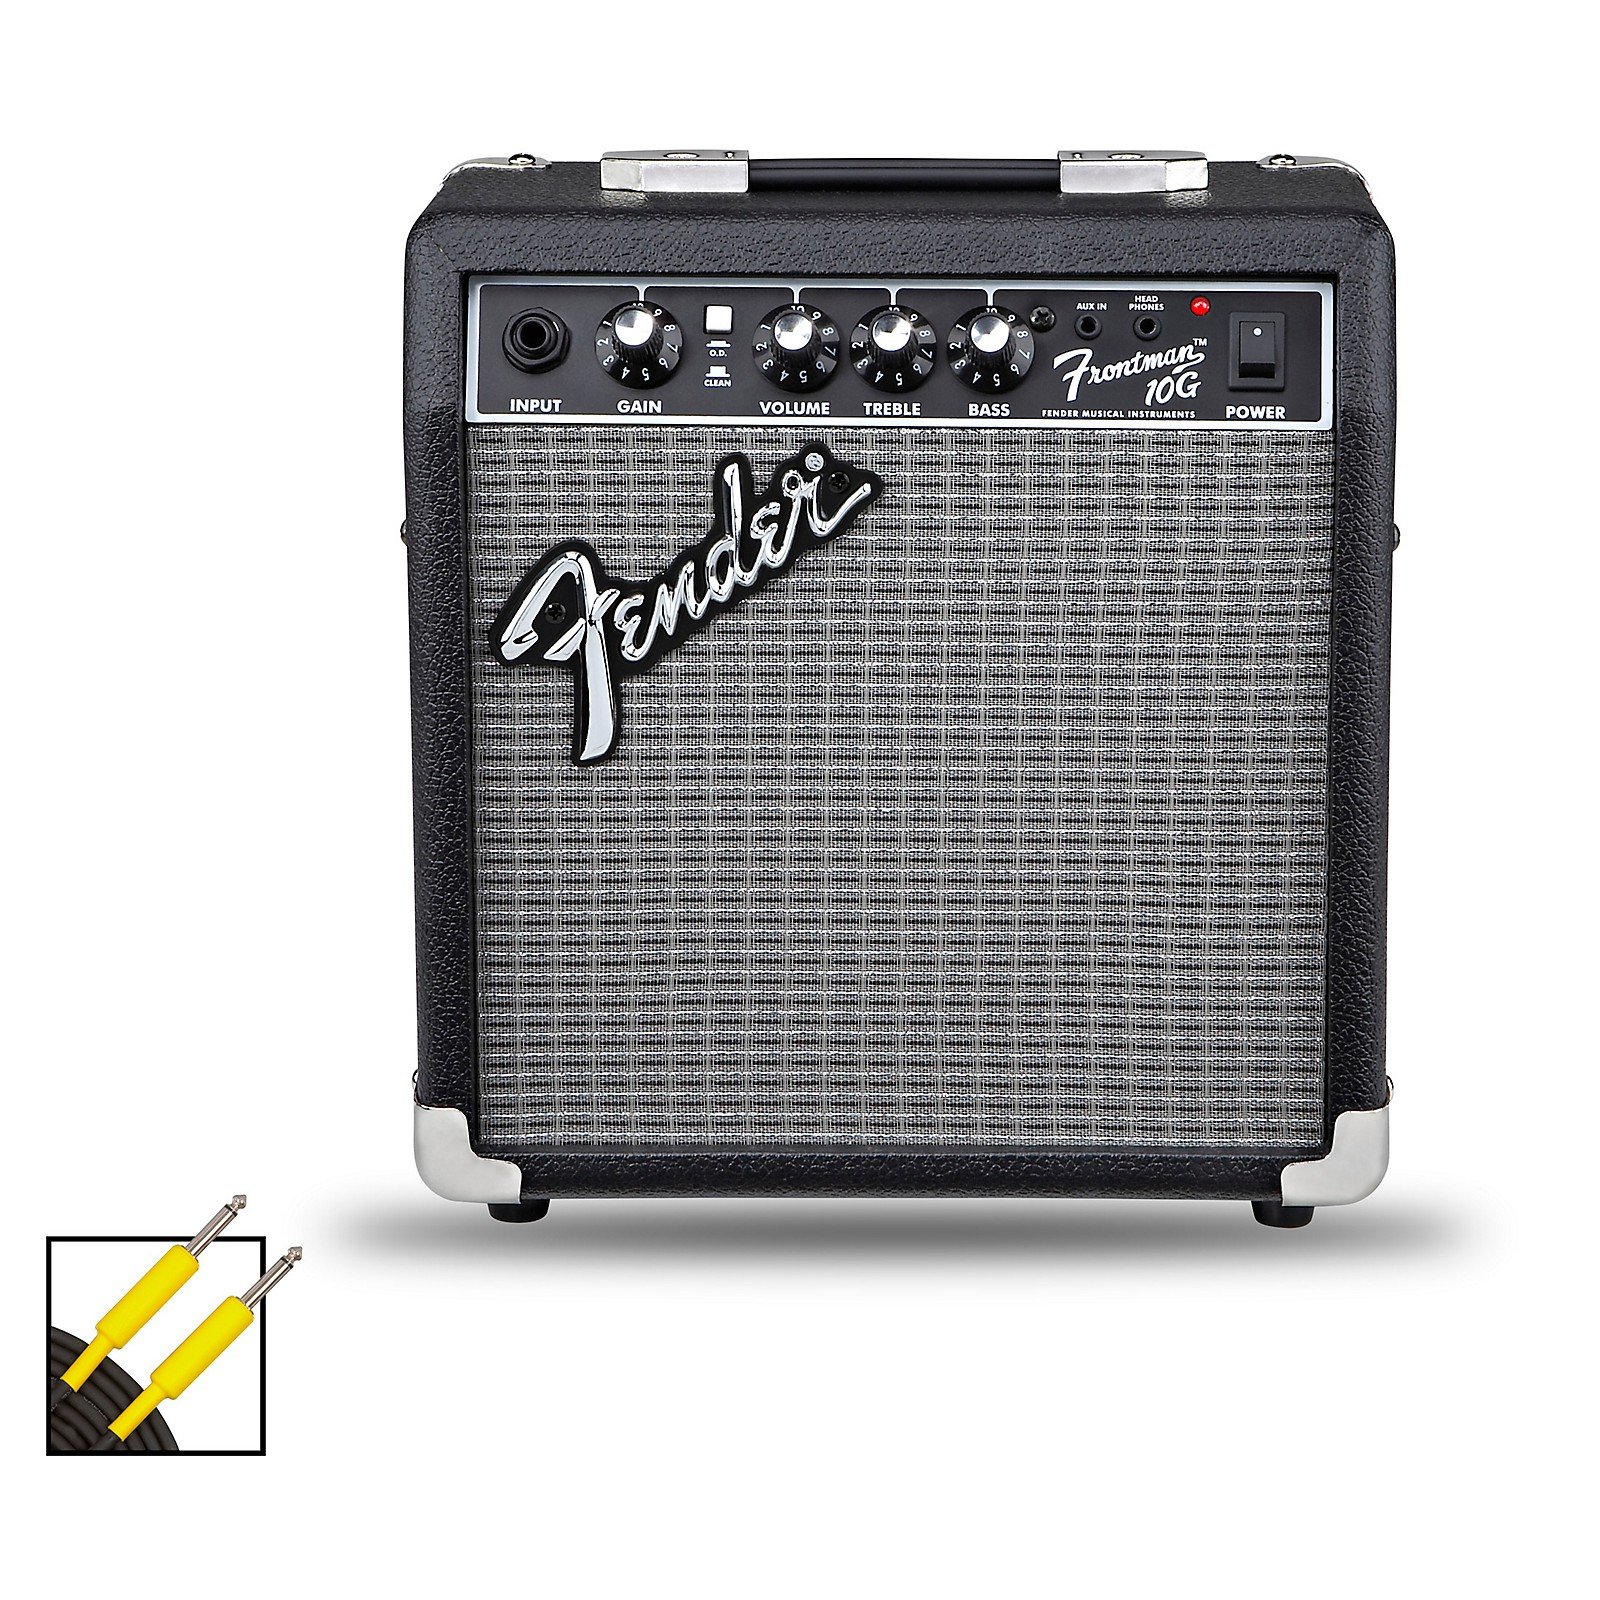 Fender Frontman 10G 10W Guitar Combo Amp with 20 Foot Instrument Cable